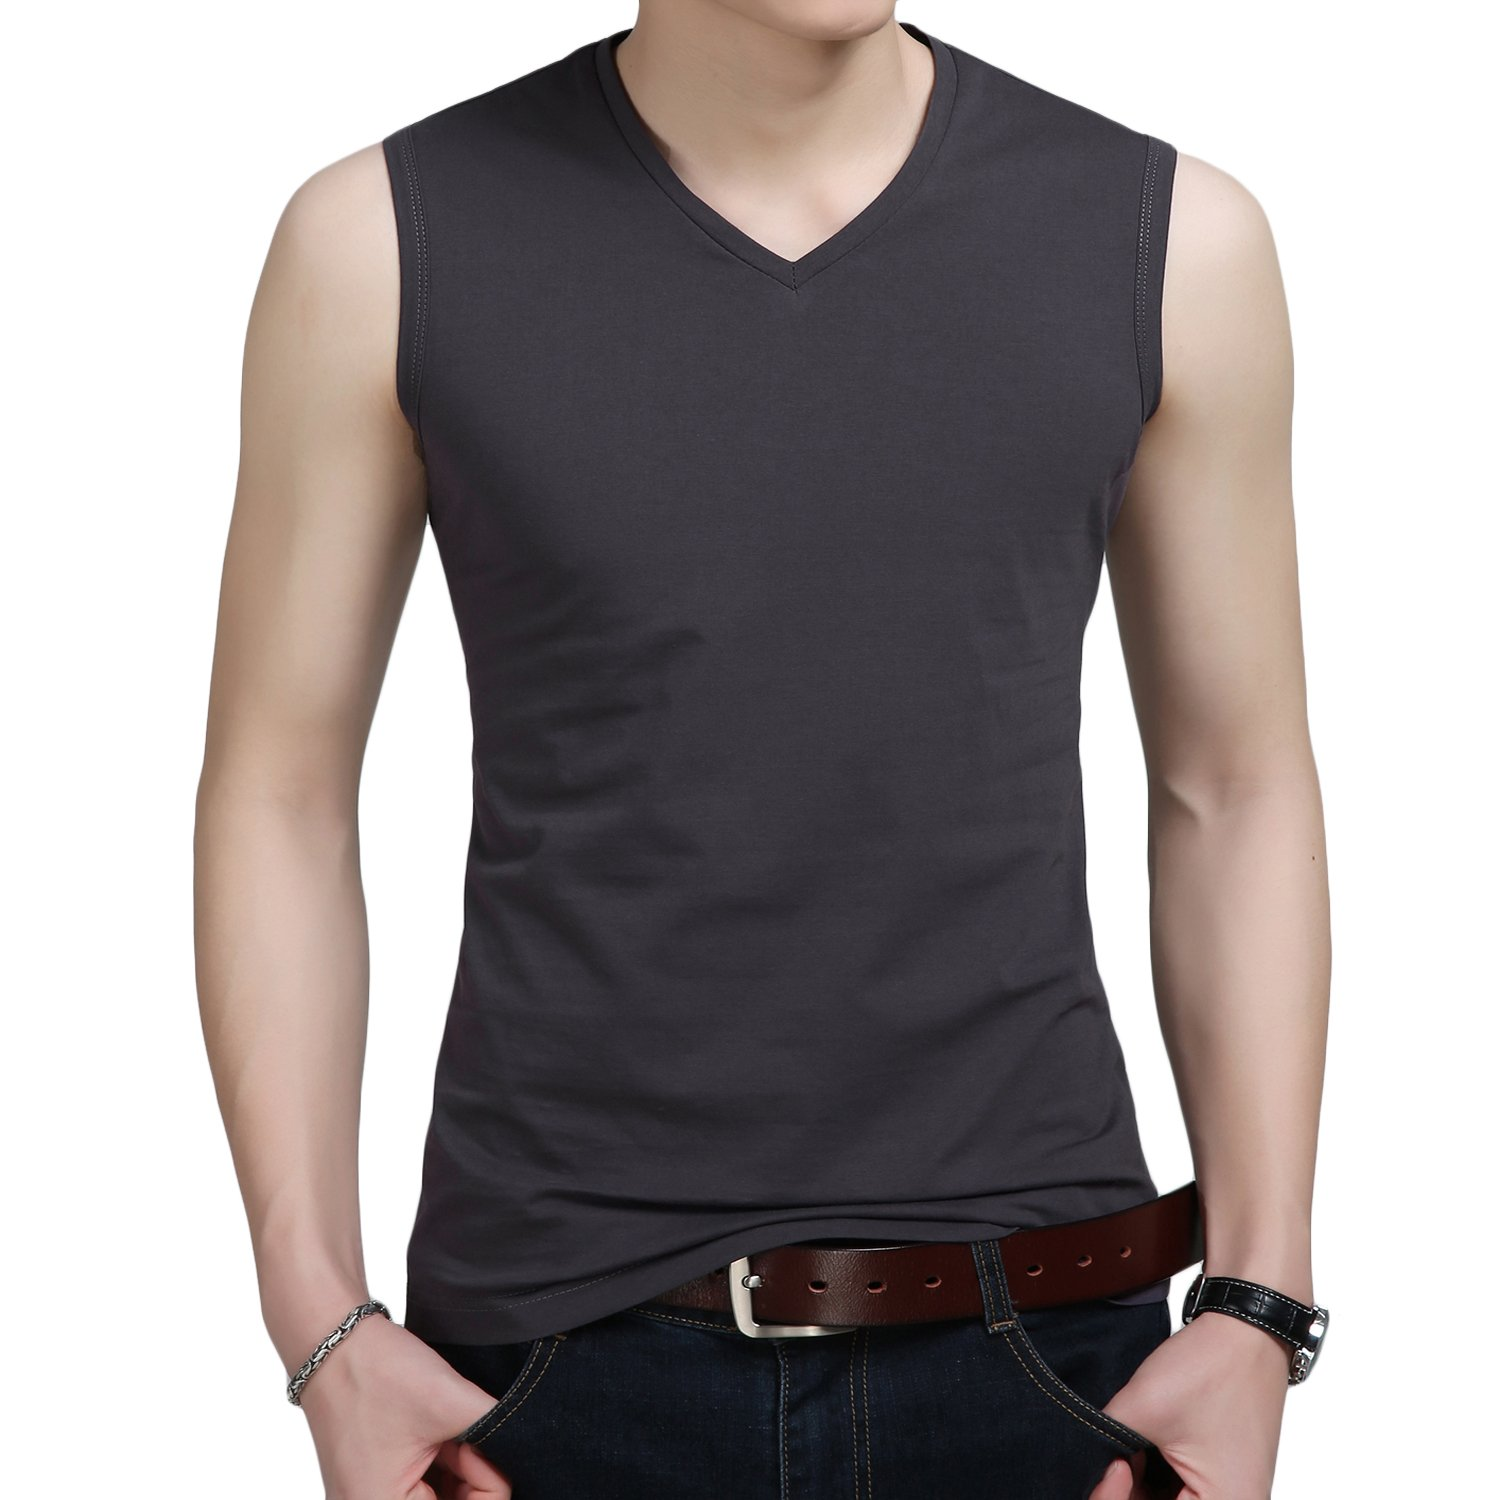 281cdea3 Online Cheap wholesale YinQ Mens Casual V-Neck Sleeveless Tee Shirts Gym  Muscle T-Shirts Sport Tank Tops Tanks Tops Suppliers